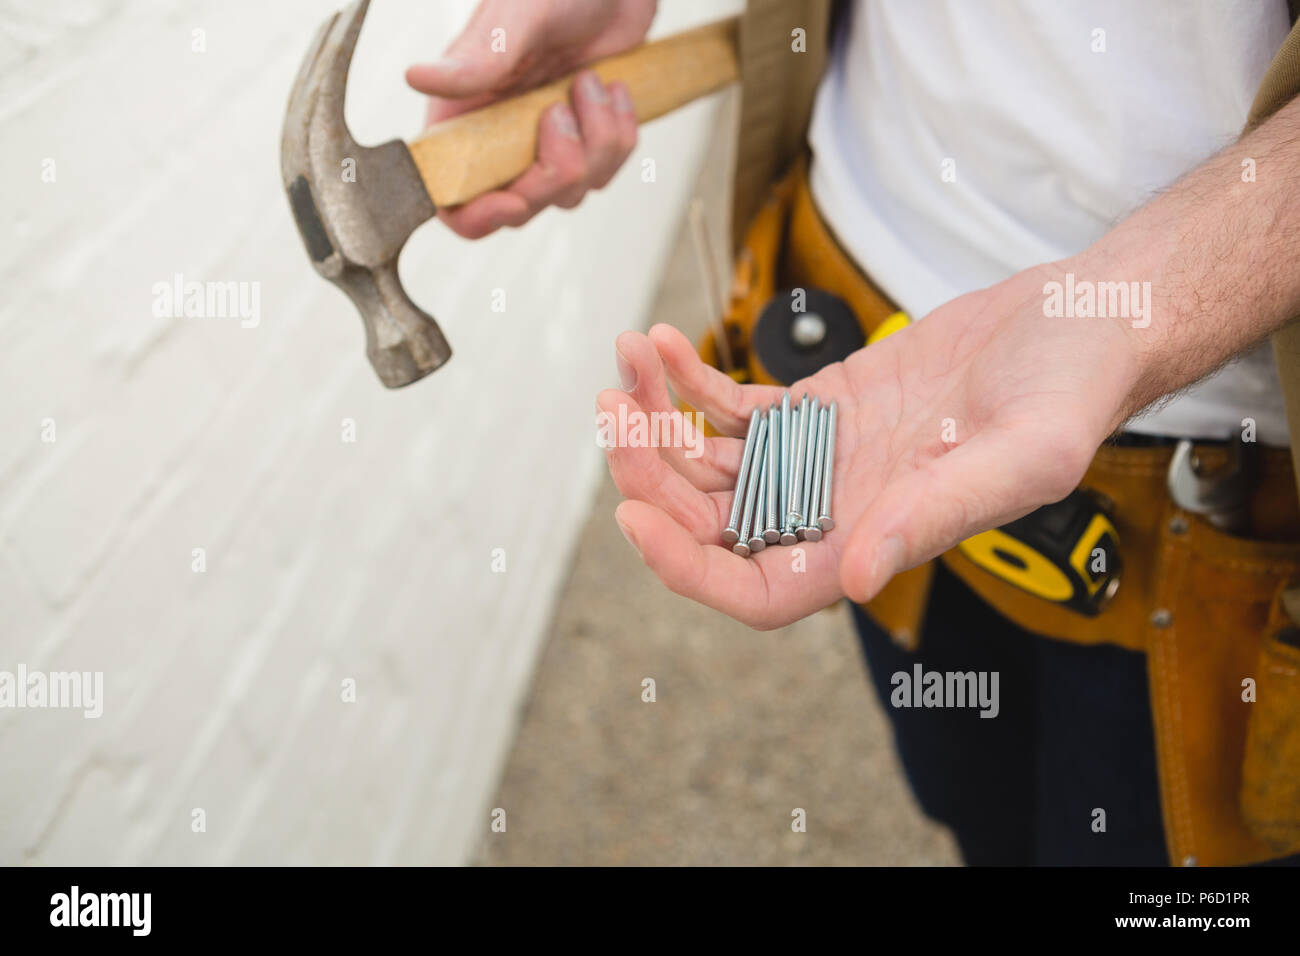 Male carpenter holding hammer and nails - Stock Image